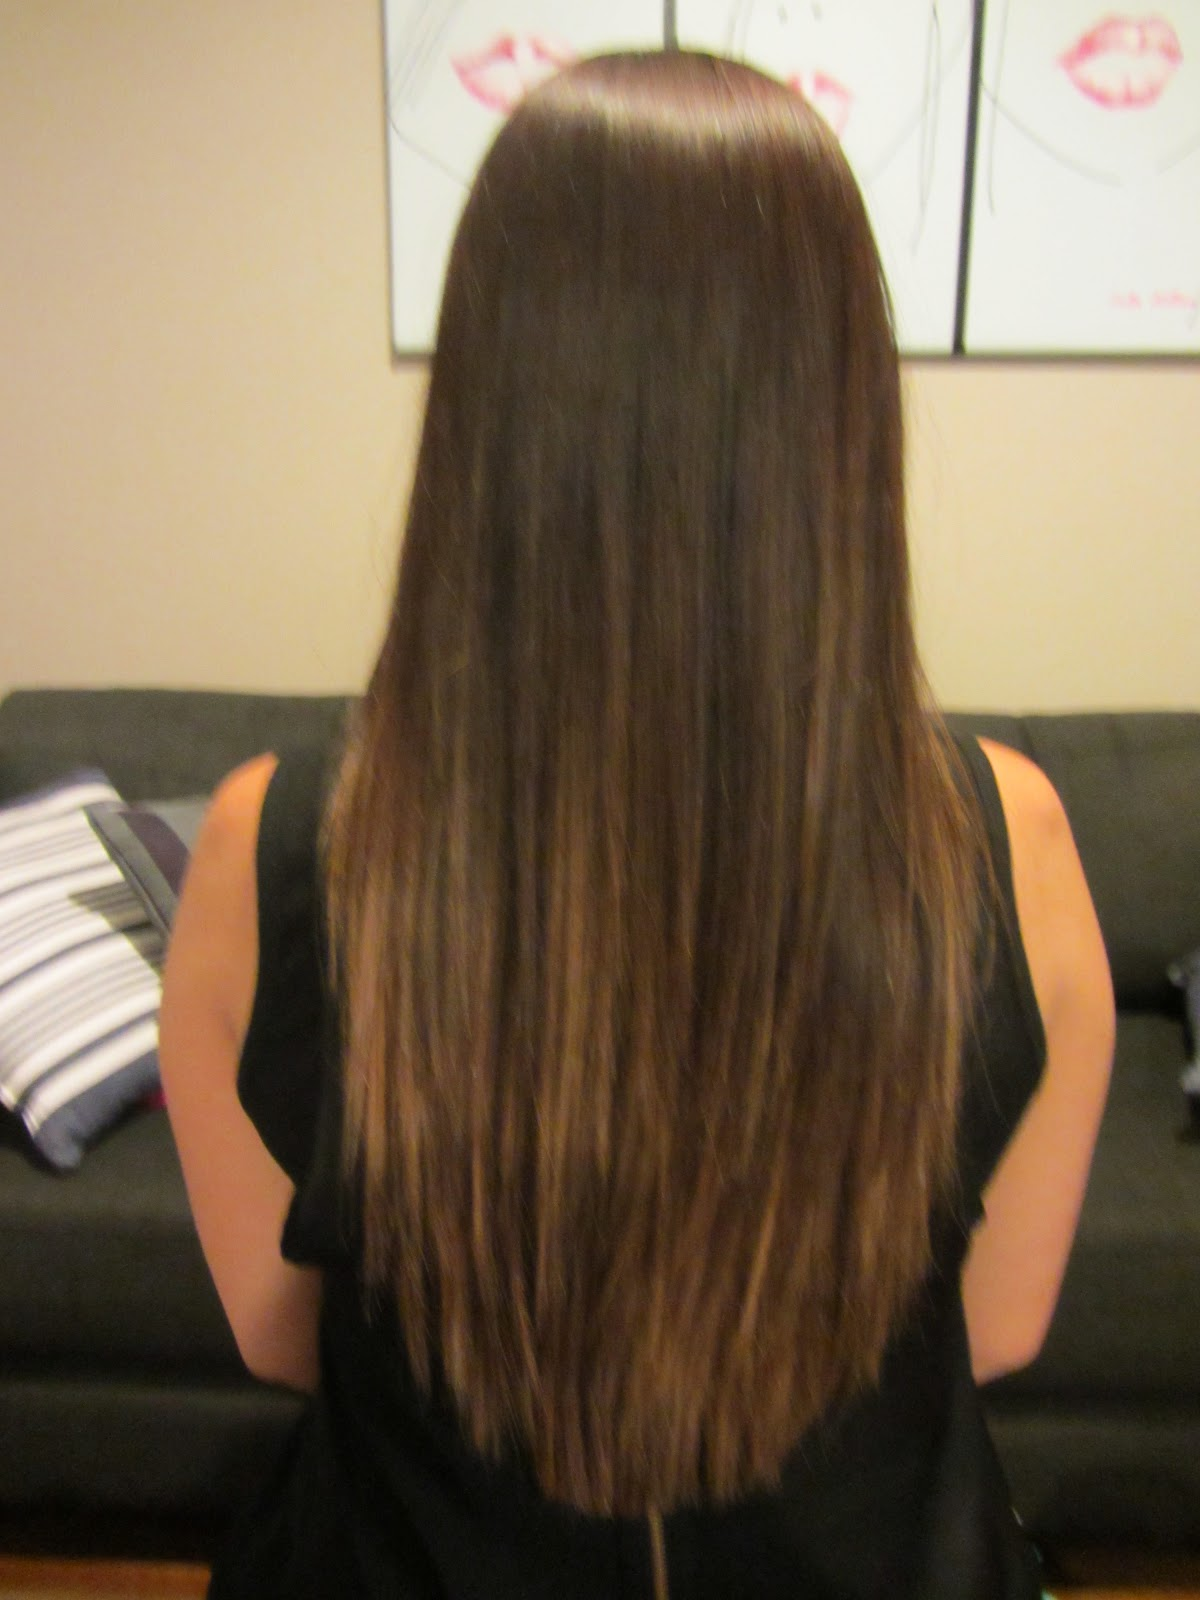 Straight Hair From The Back View Norm anytime im at the